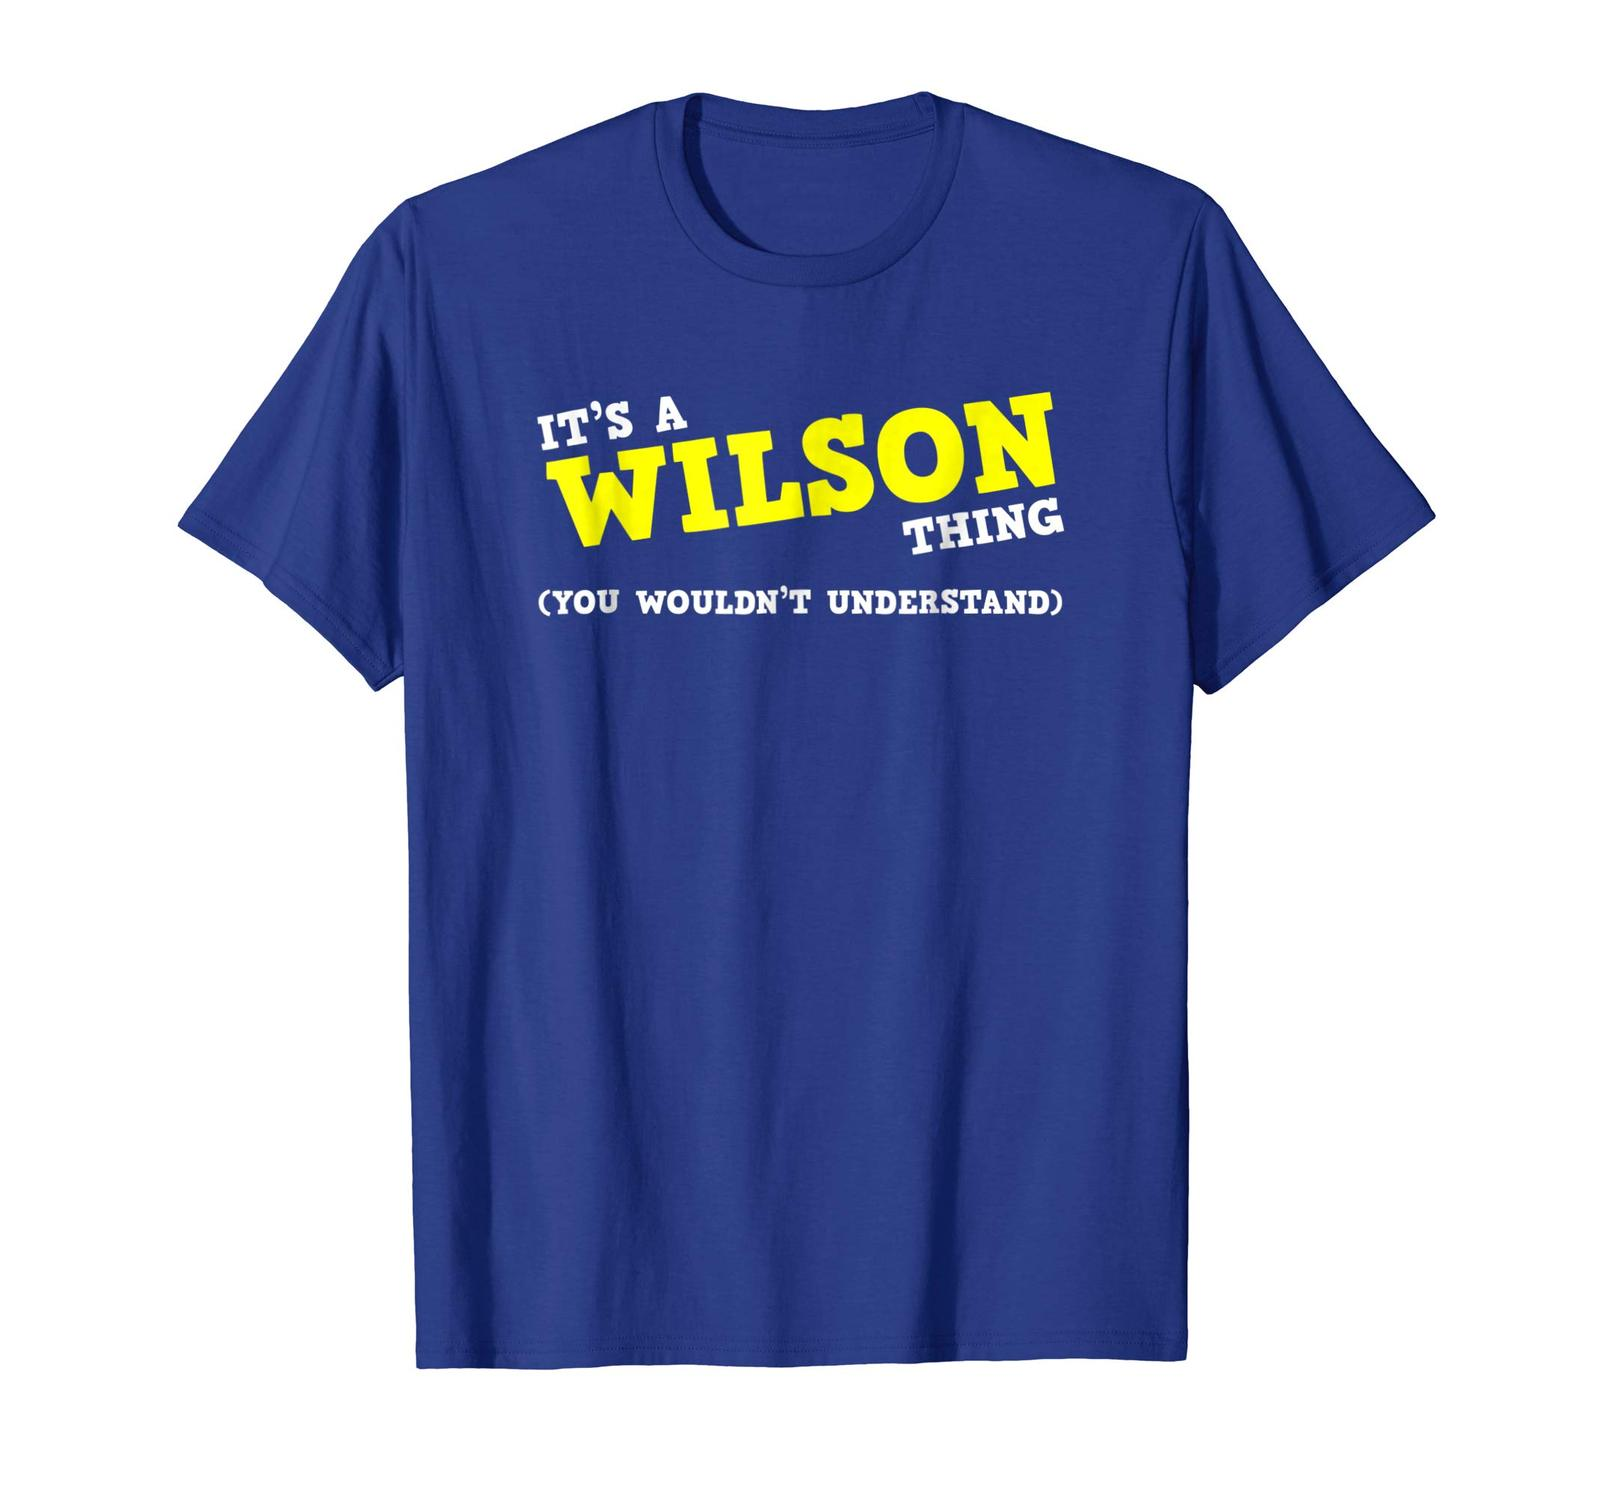 Special shirts - Funny Wilson Matching Family Name Shirt Gifts Men